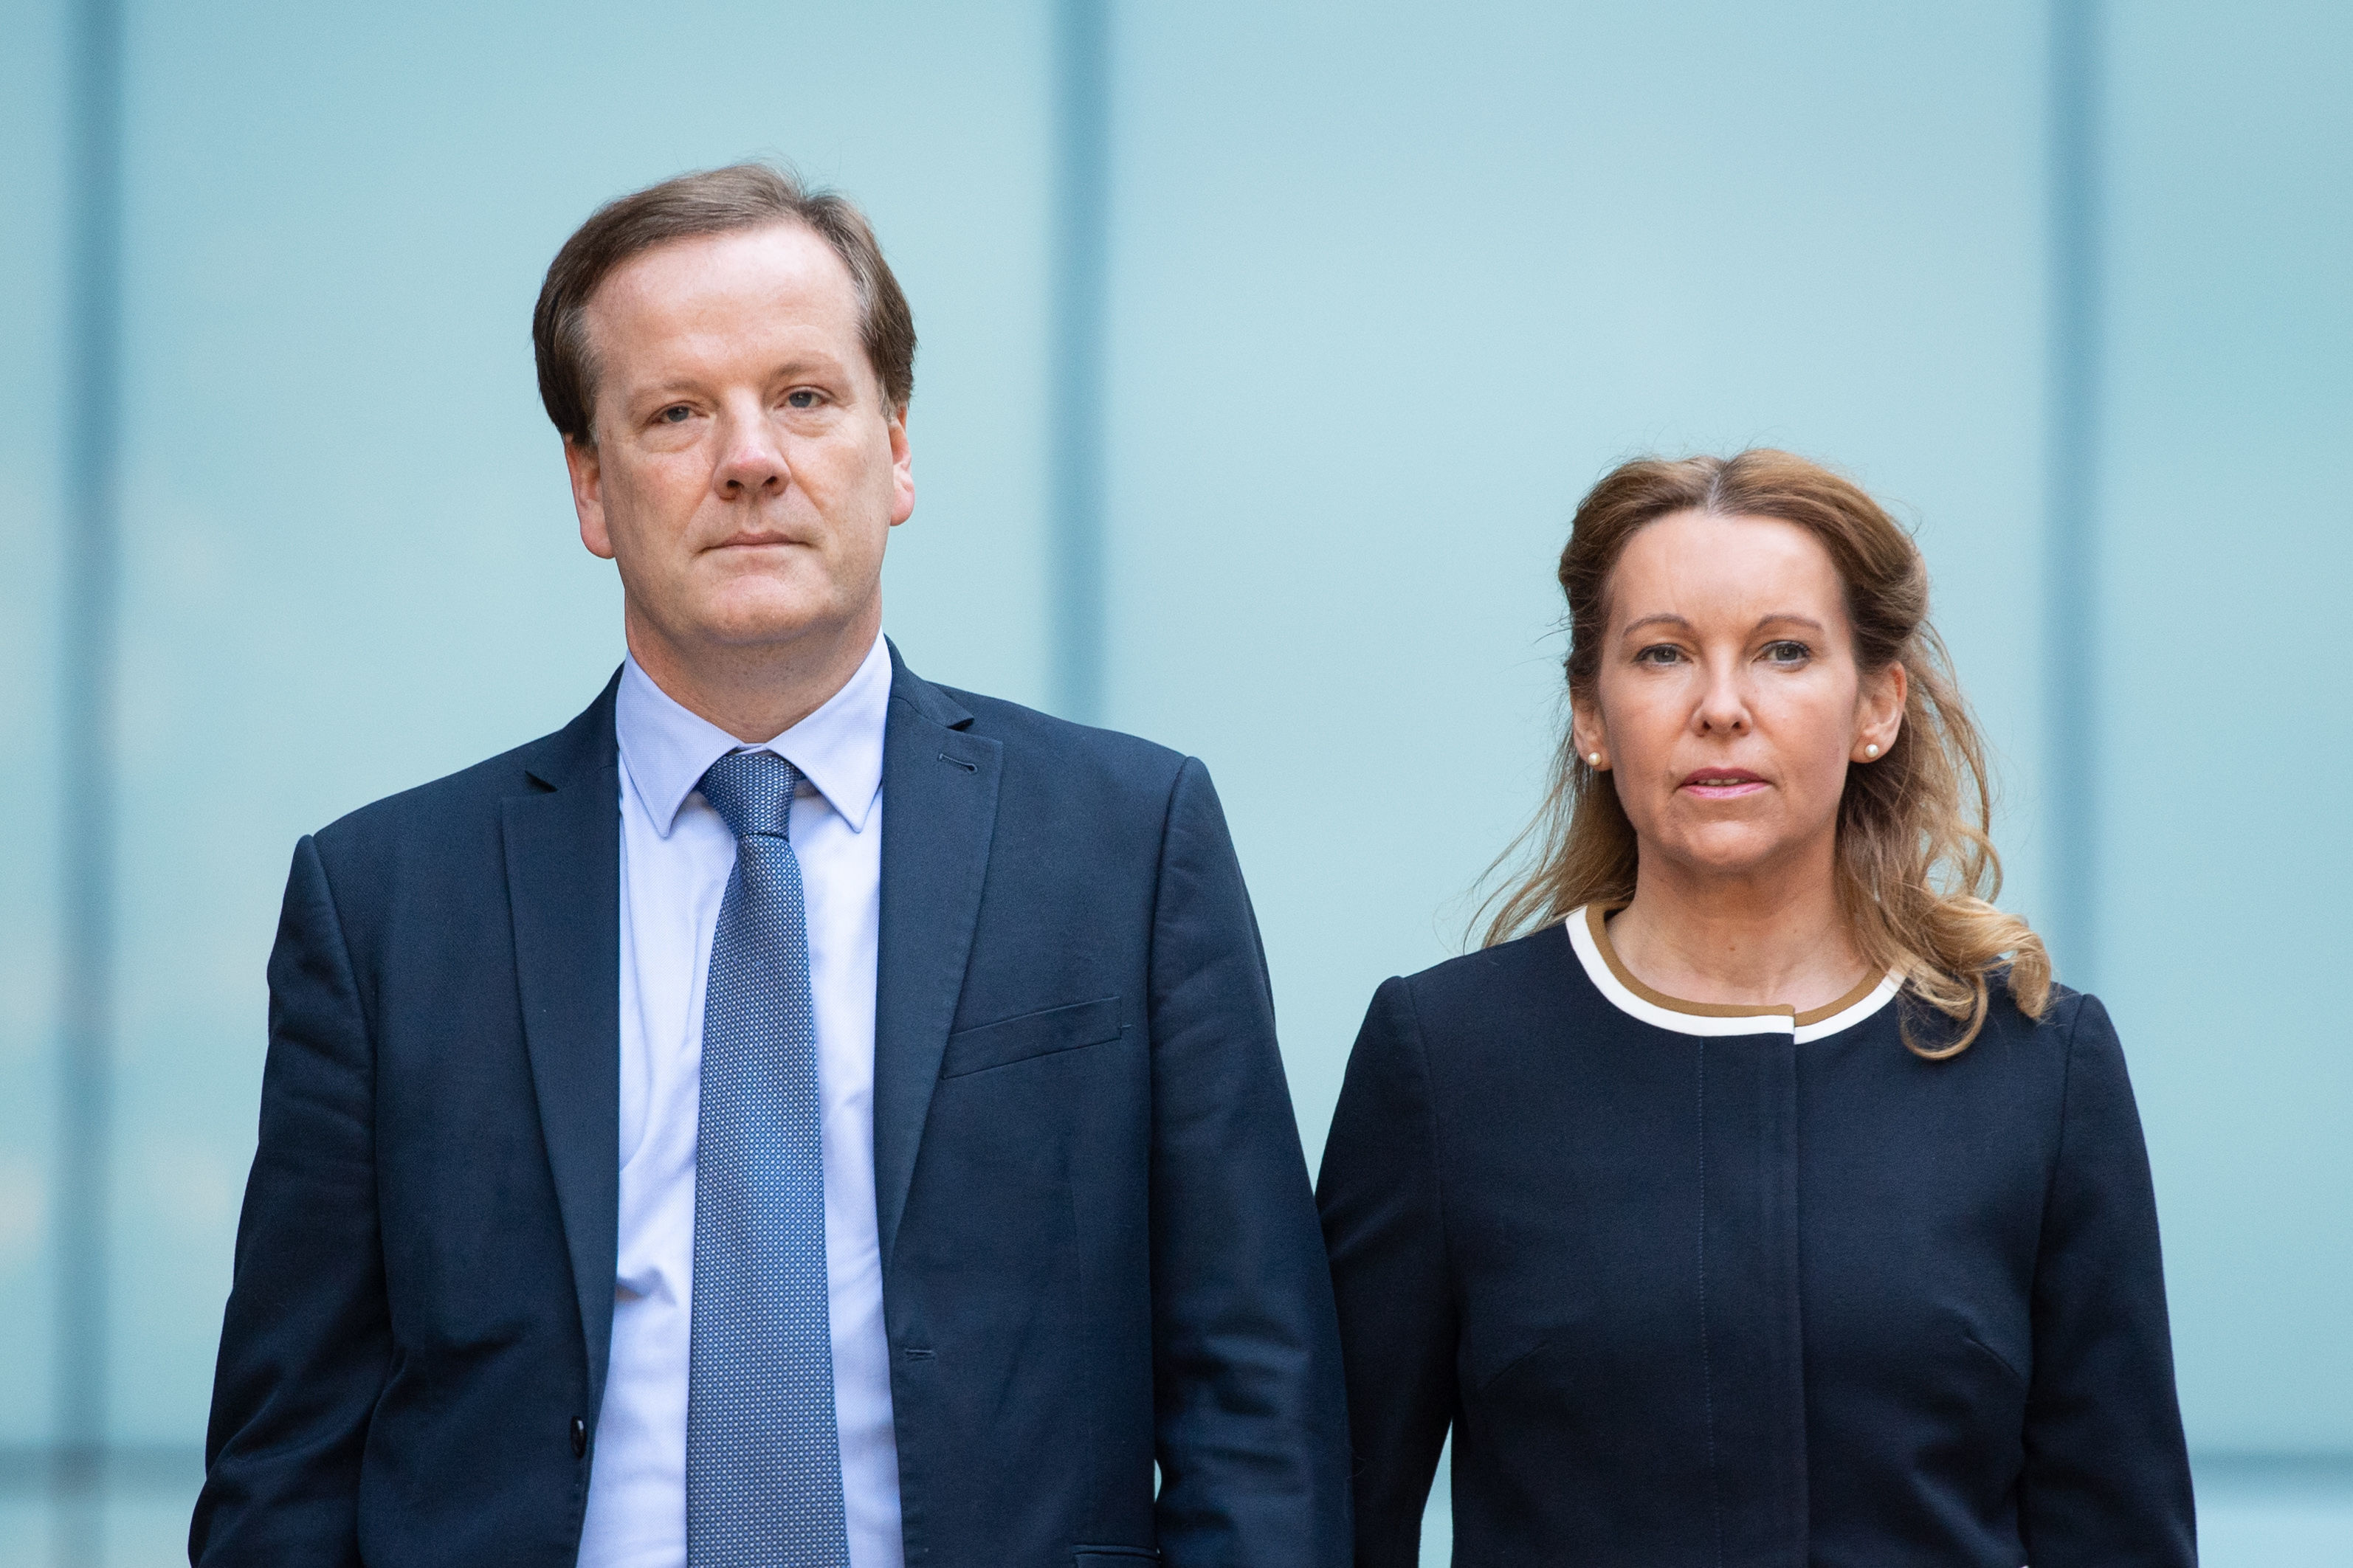 Ex Tory Mp Charlie Elphicke Found Guilty On Three Counts